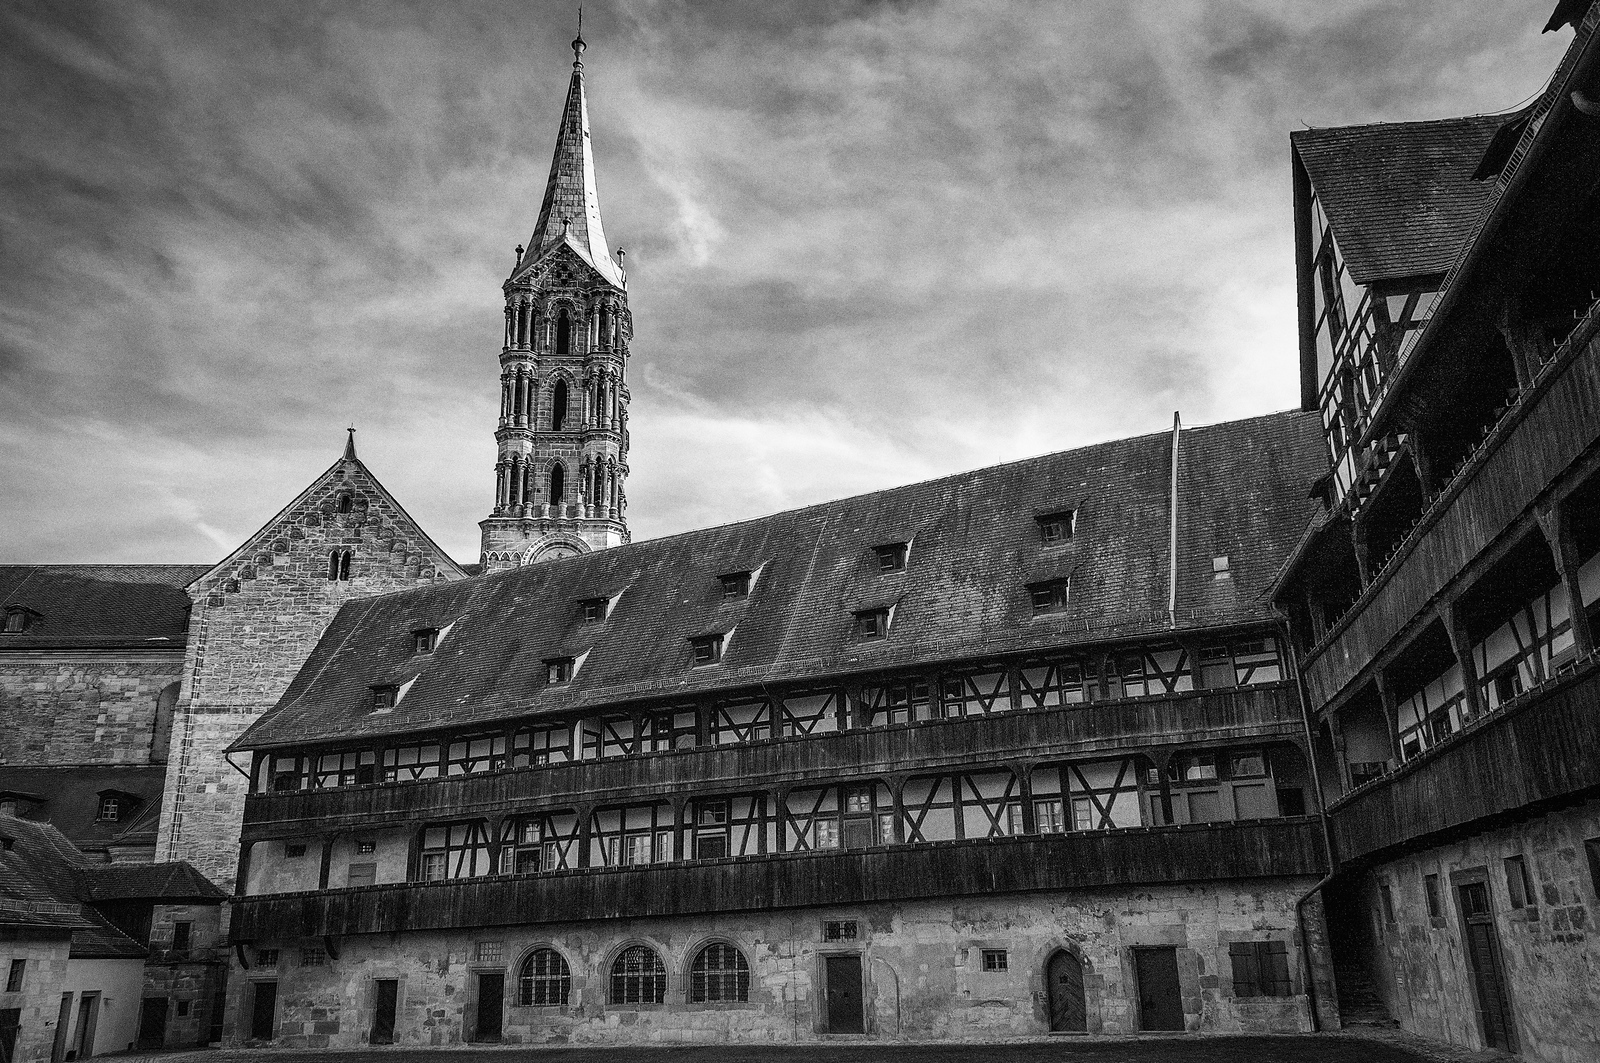 Town of Bamberg UNESCO World Heritage Site